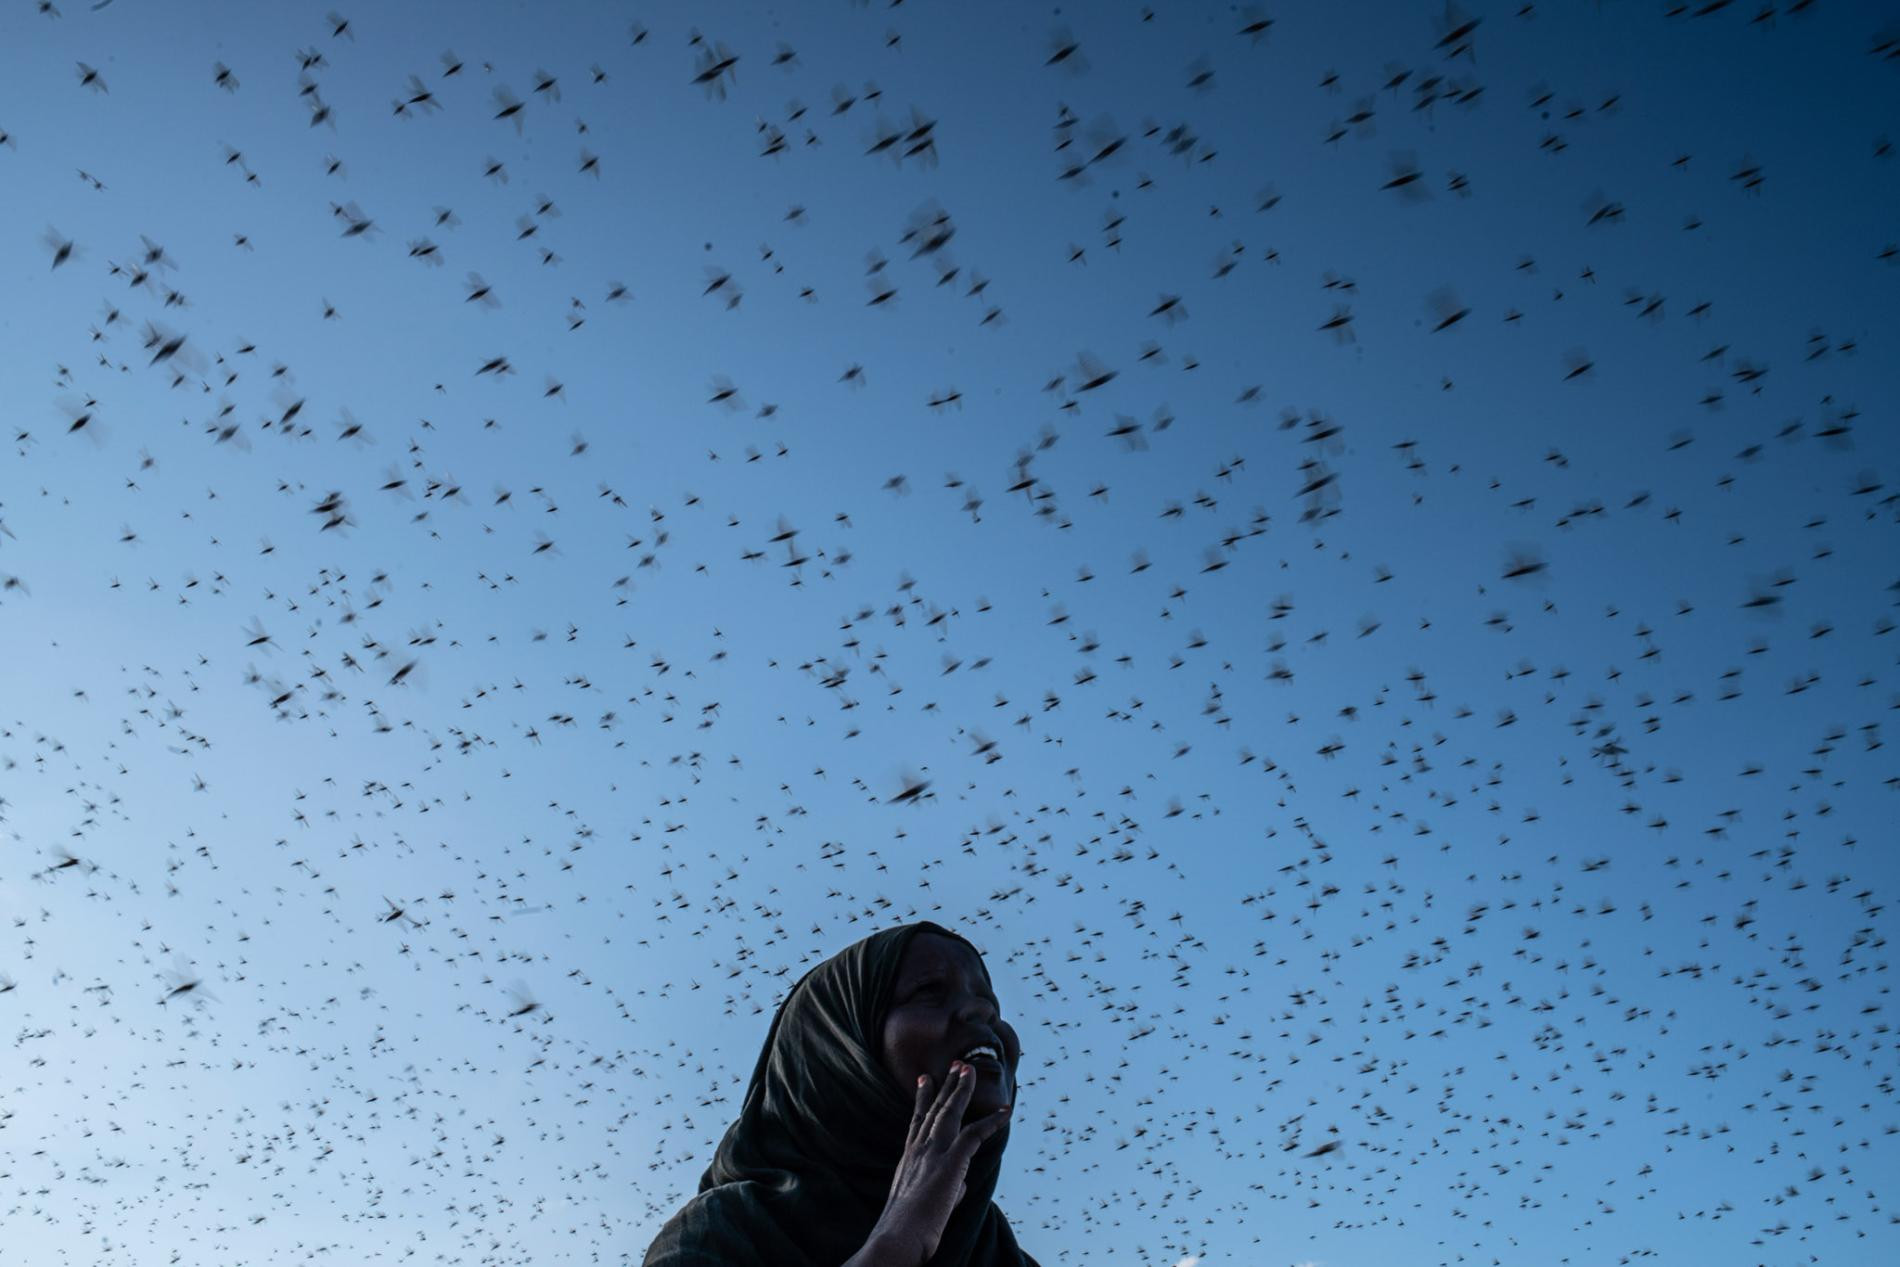 At the Burao IDP camp, a woman watches as a swarm of locusts darkens the sky. Erratic limate conditions that cause severe droughts across the Horn of Africa in some years yield extreme rainfall in others—the trigger, in 2019, for the worst outbreak of desert locusts Somalia has seen in decades. The locusts can devour a field of crops in hours.